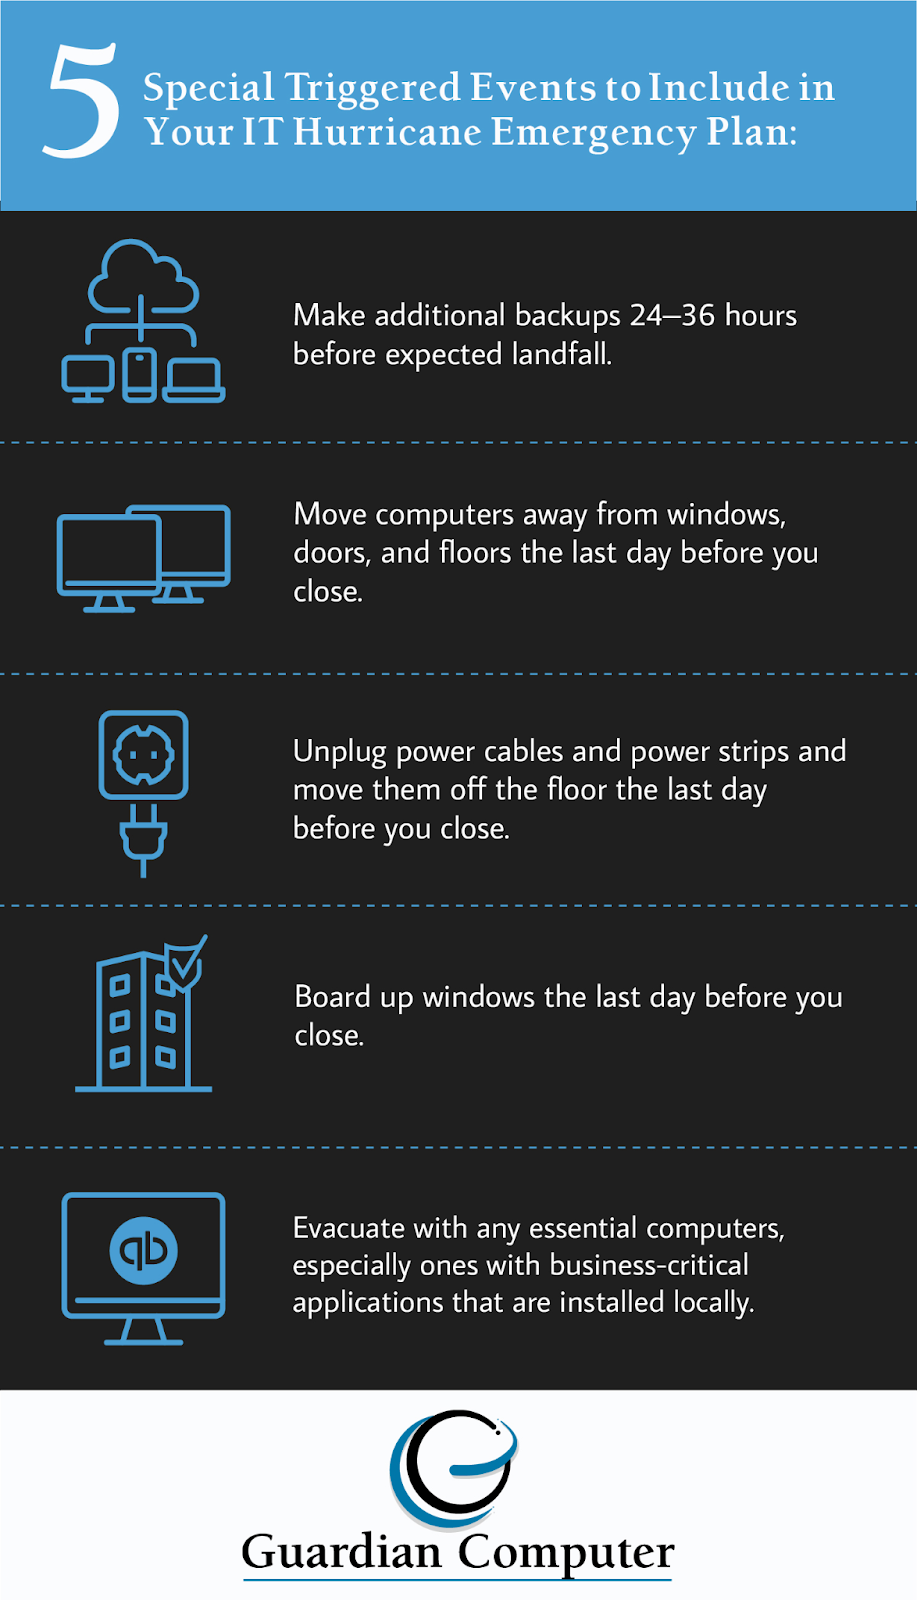 Consider this list of 5 special triggered events to include in your IT hurricane emergency plan.